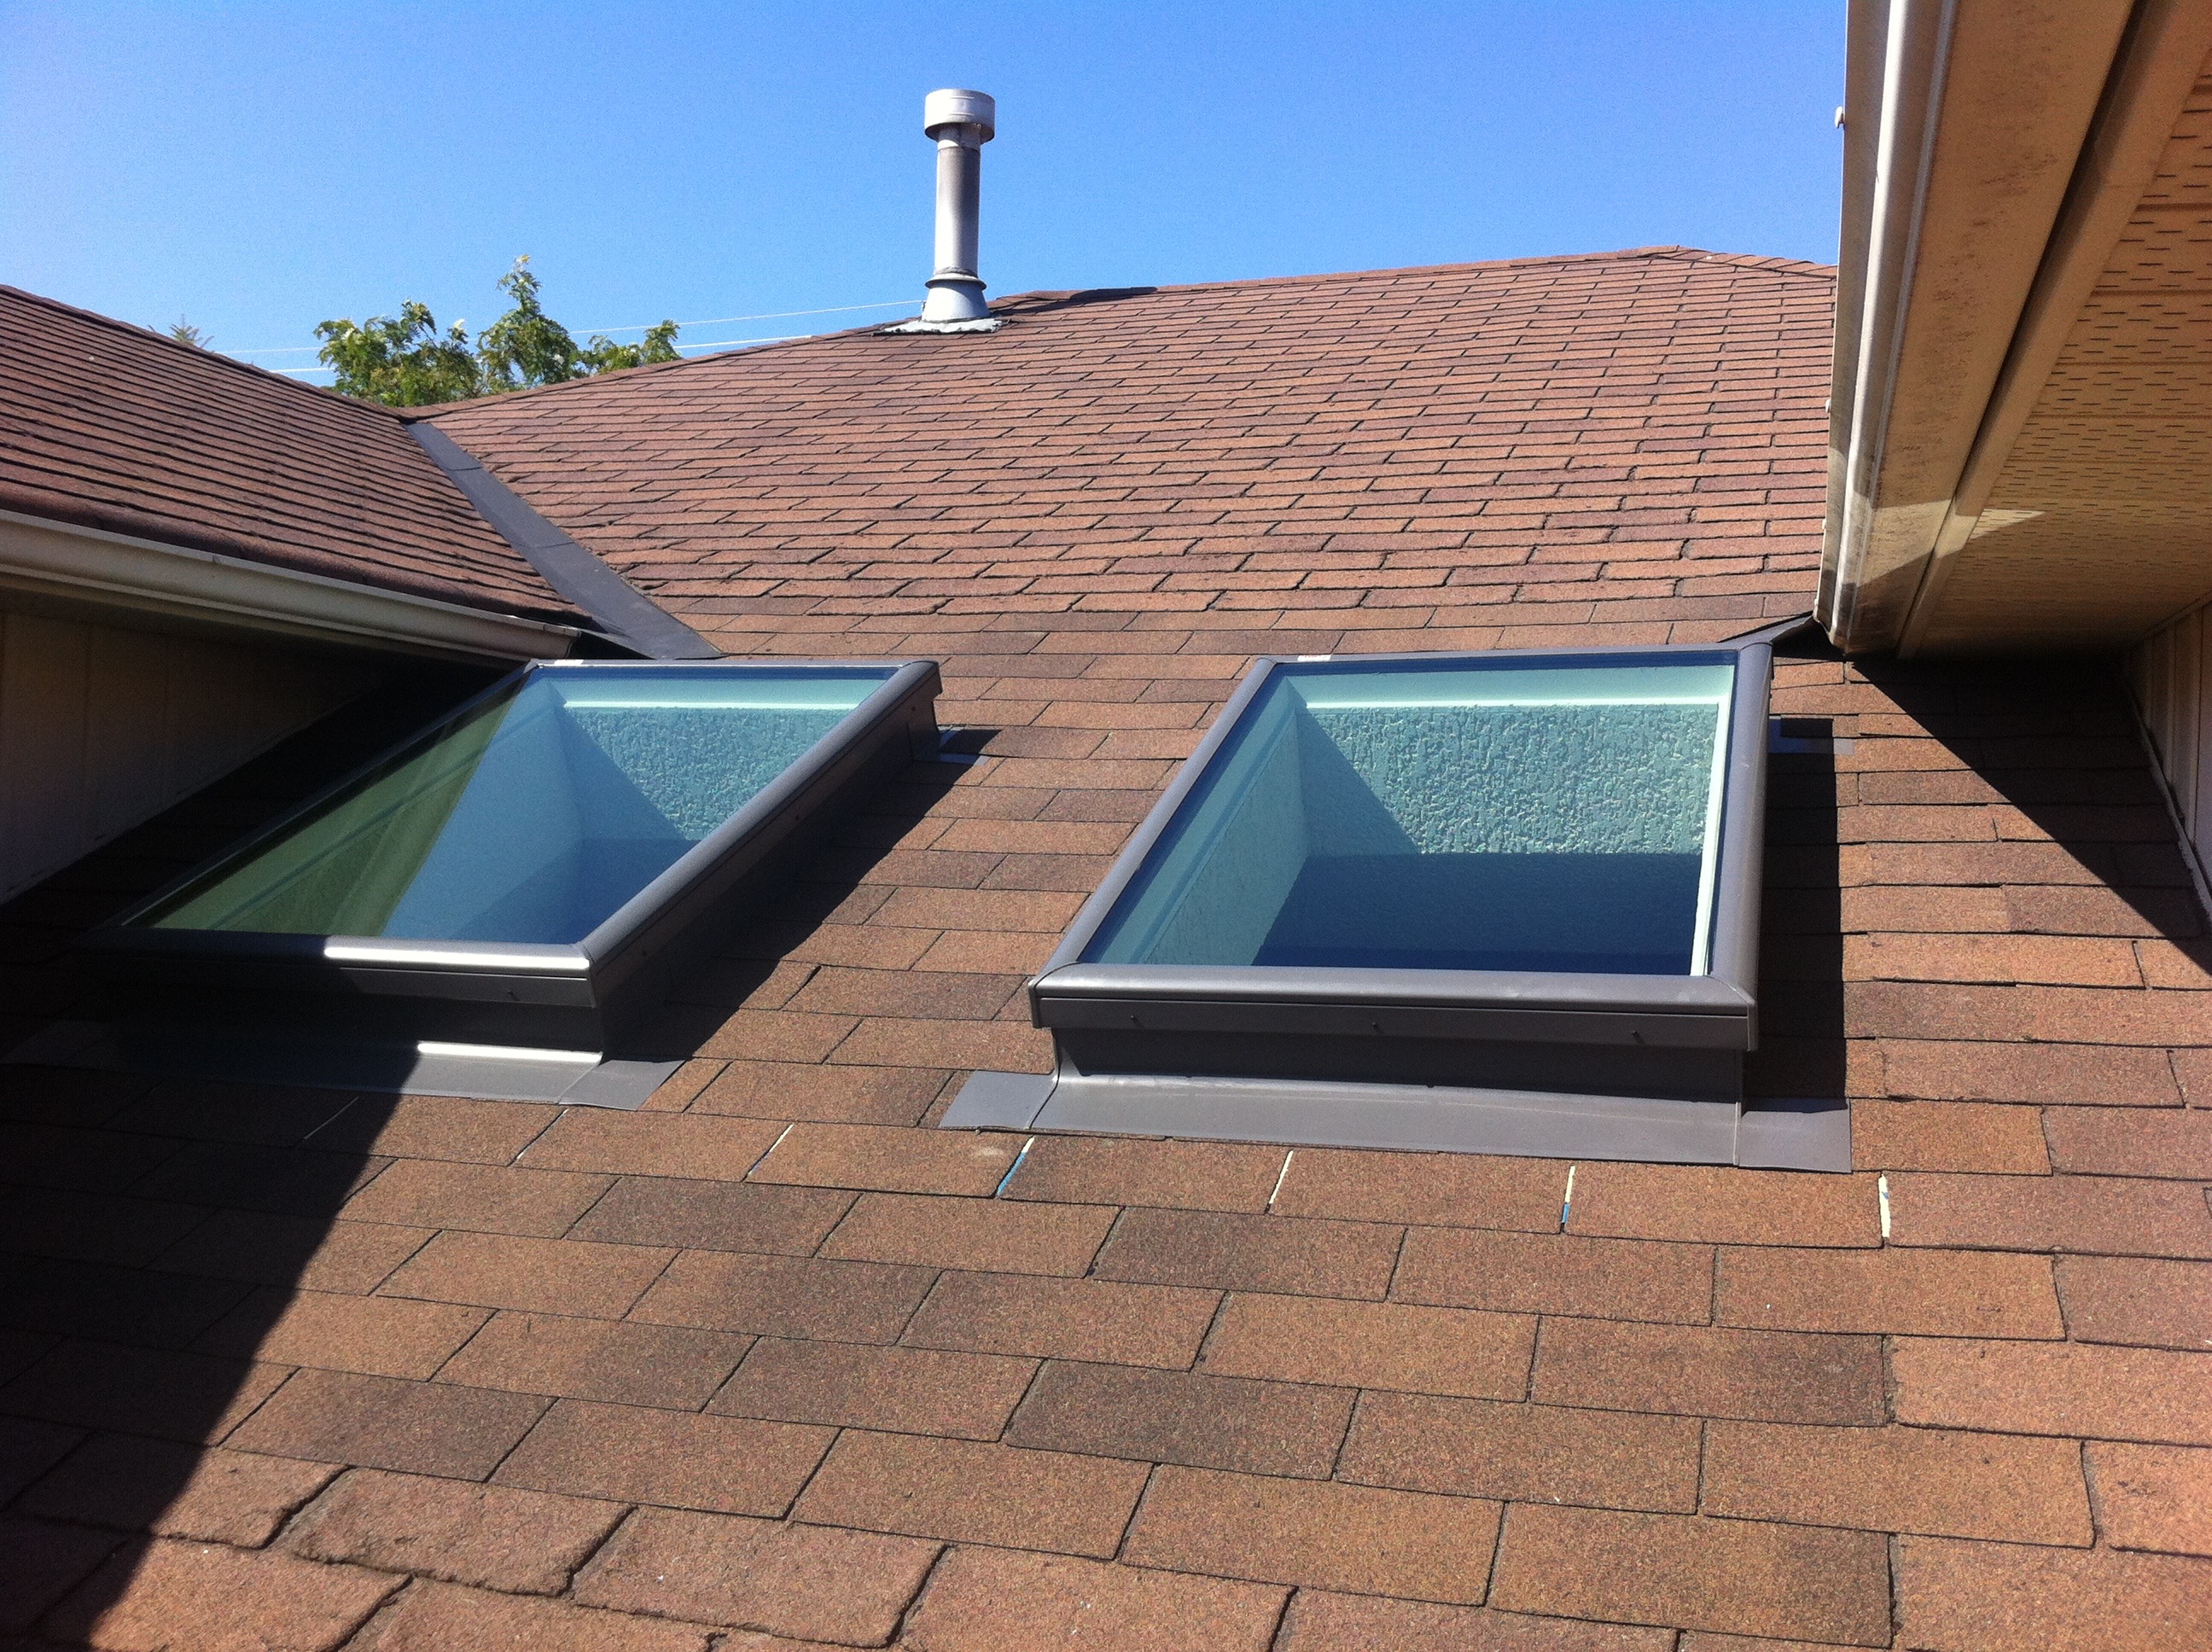 Whitby Skylight Repair